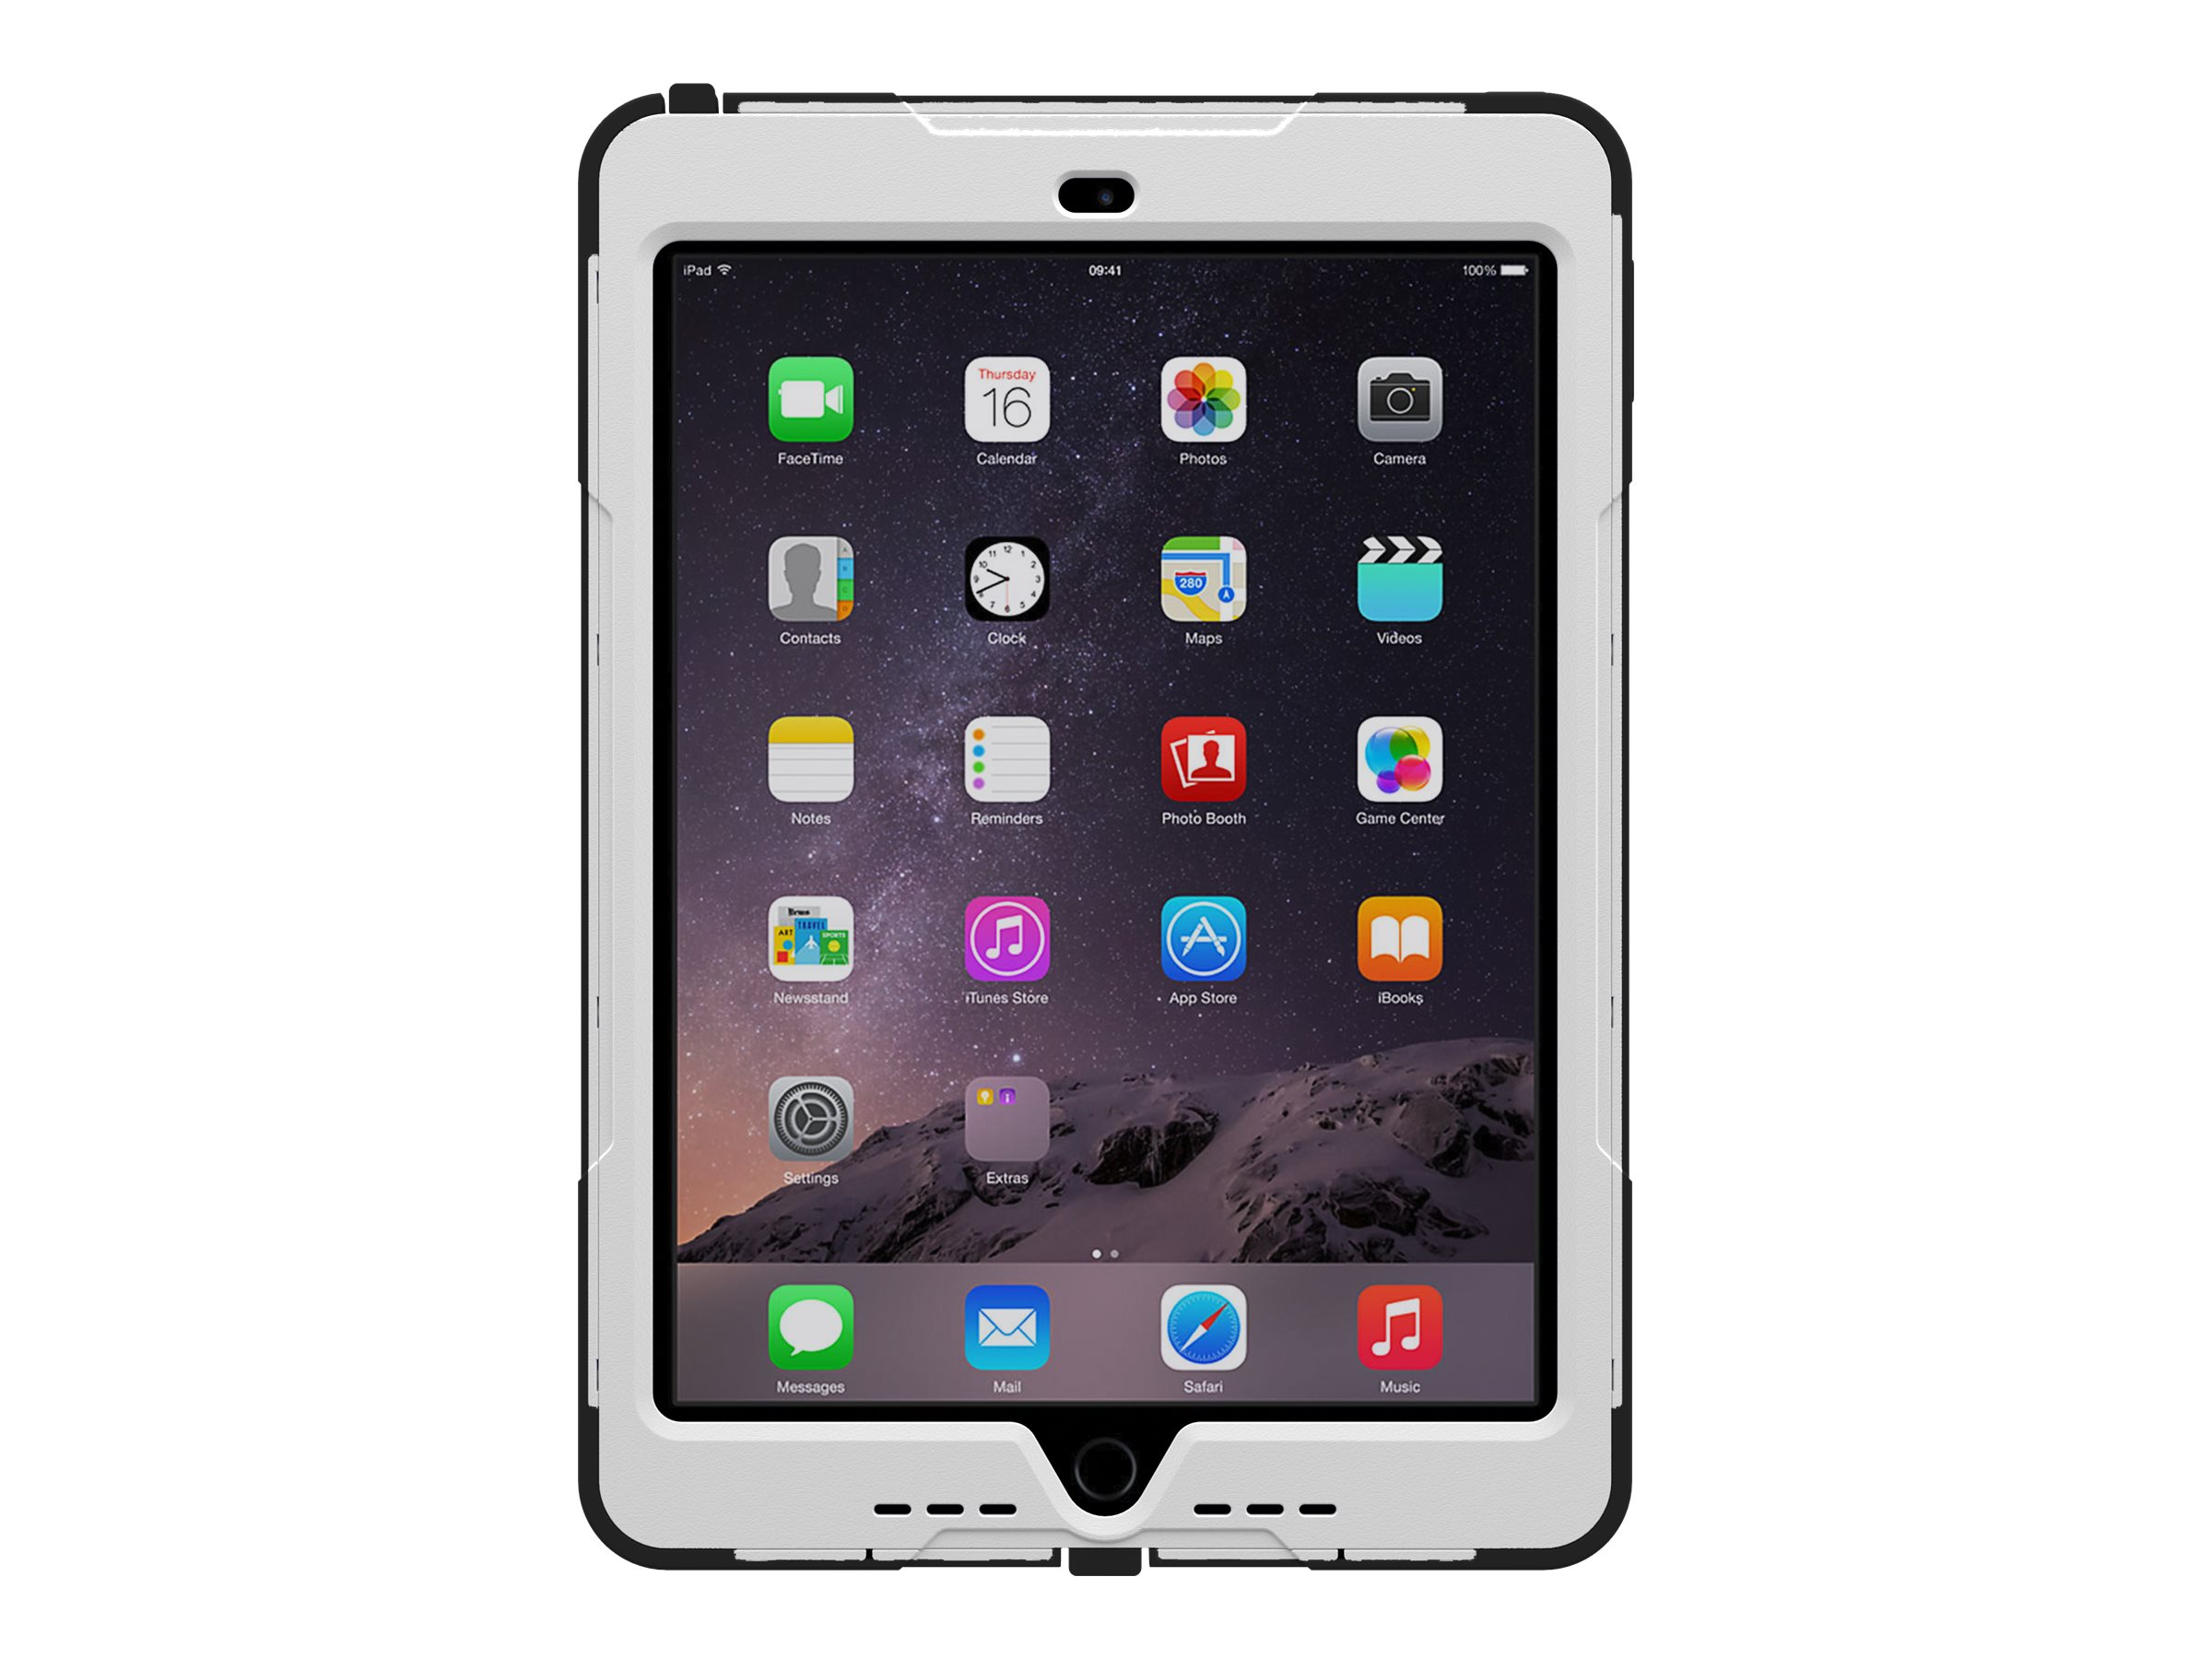 Trident Case 2015 Cyclops Case for iPad Air 2, White, CY-APIPA2-WT000, 19013696, Carrying Cases - Tablets & eReaders